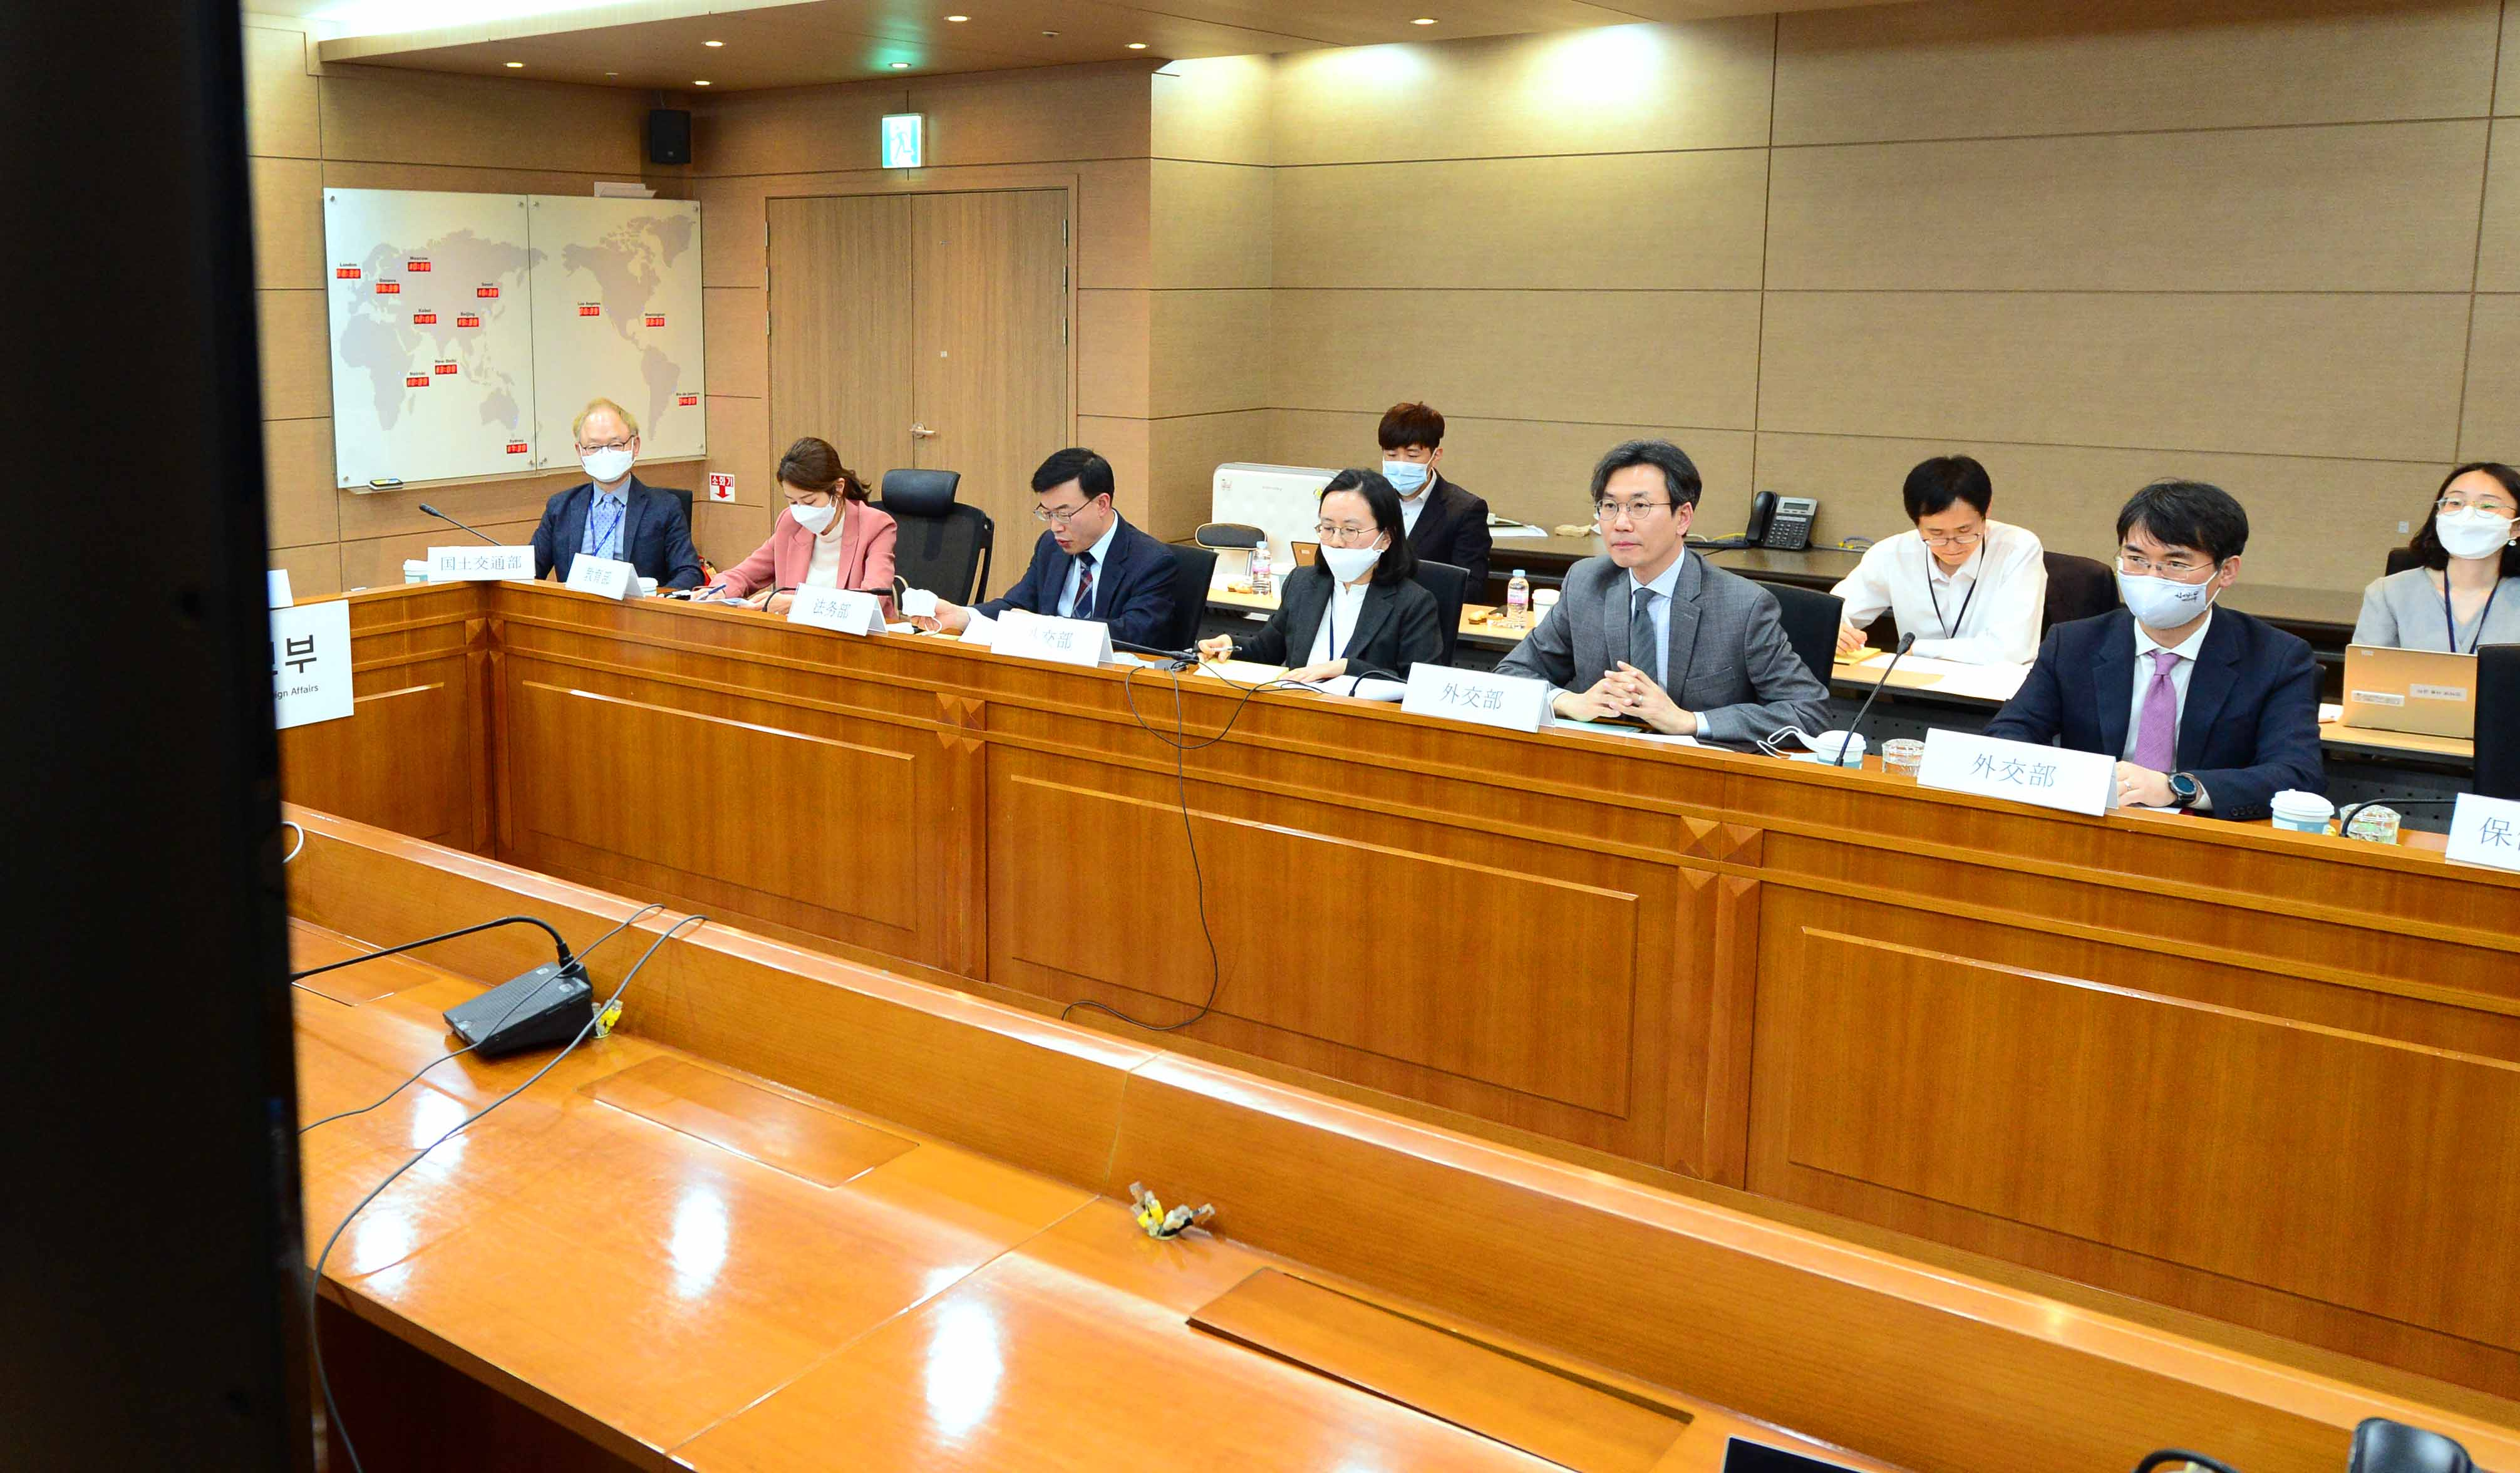 2nd ROK-China Video Conference on Cooperation in Fight against COVID-19